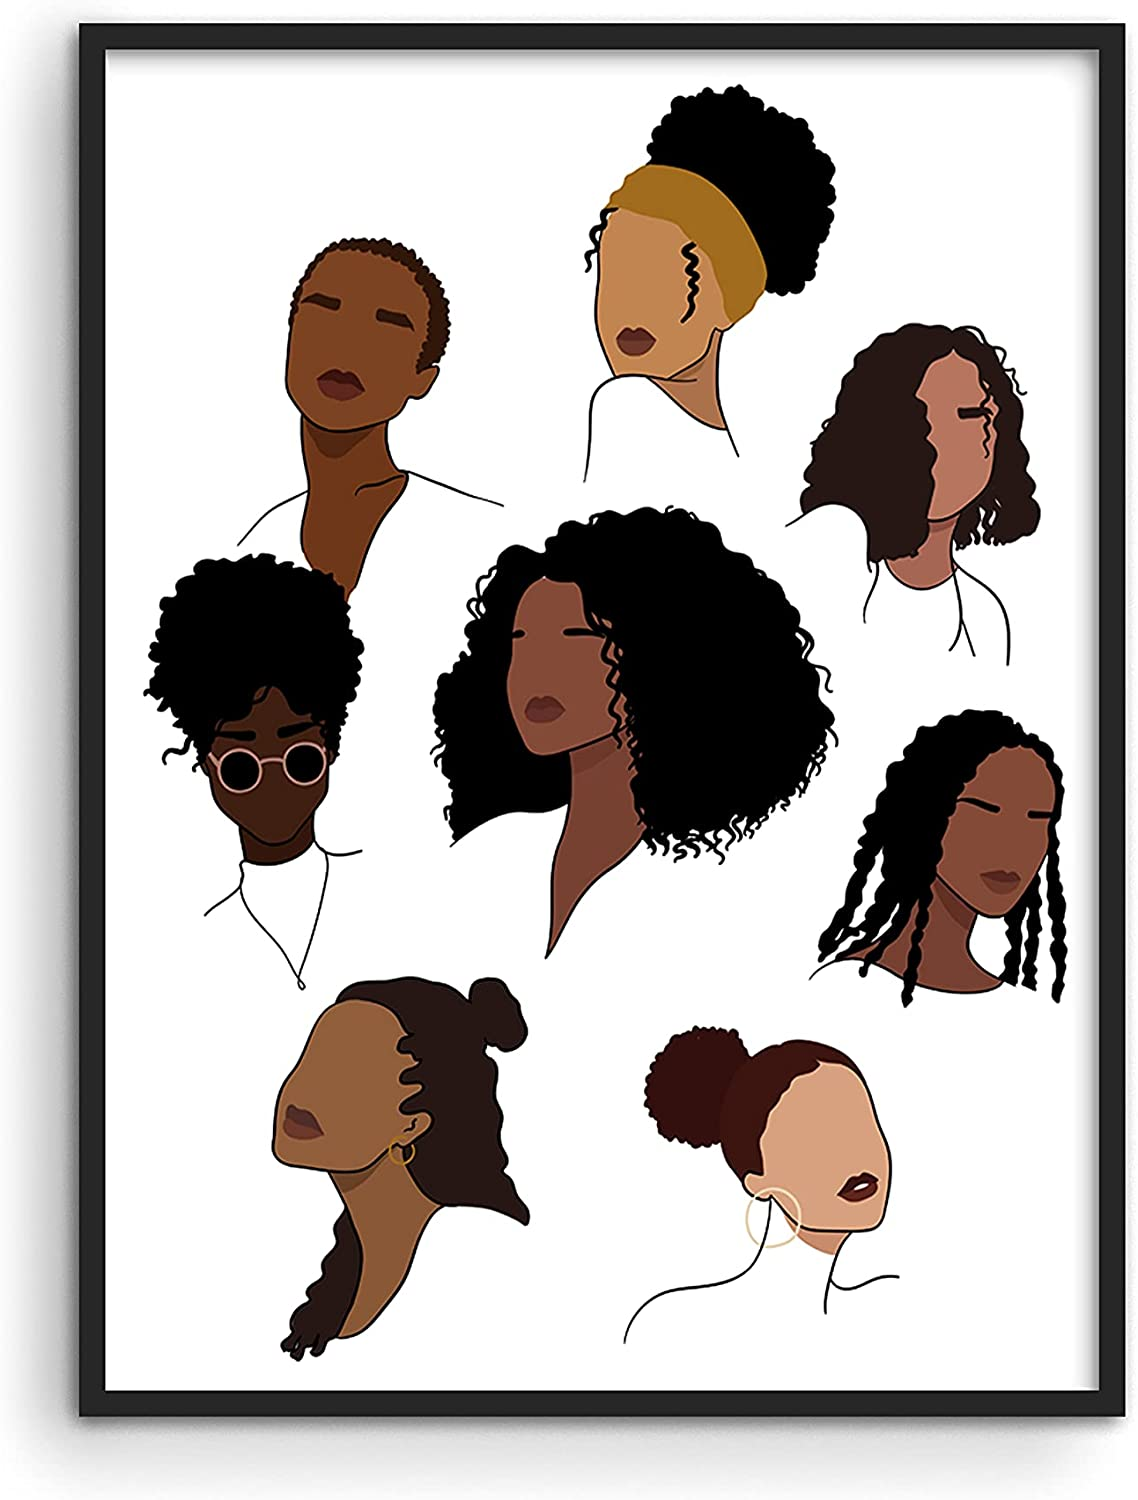 Haus and Hues Black Girl Wall Art & Hair Posters for Women - Black Women Art & African American Posters for Wall | Black Woman Wall Art & African Art Pictures Hairstyle Collage UNFRAMED 12x16